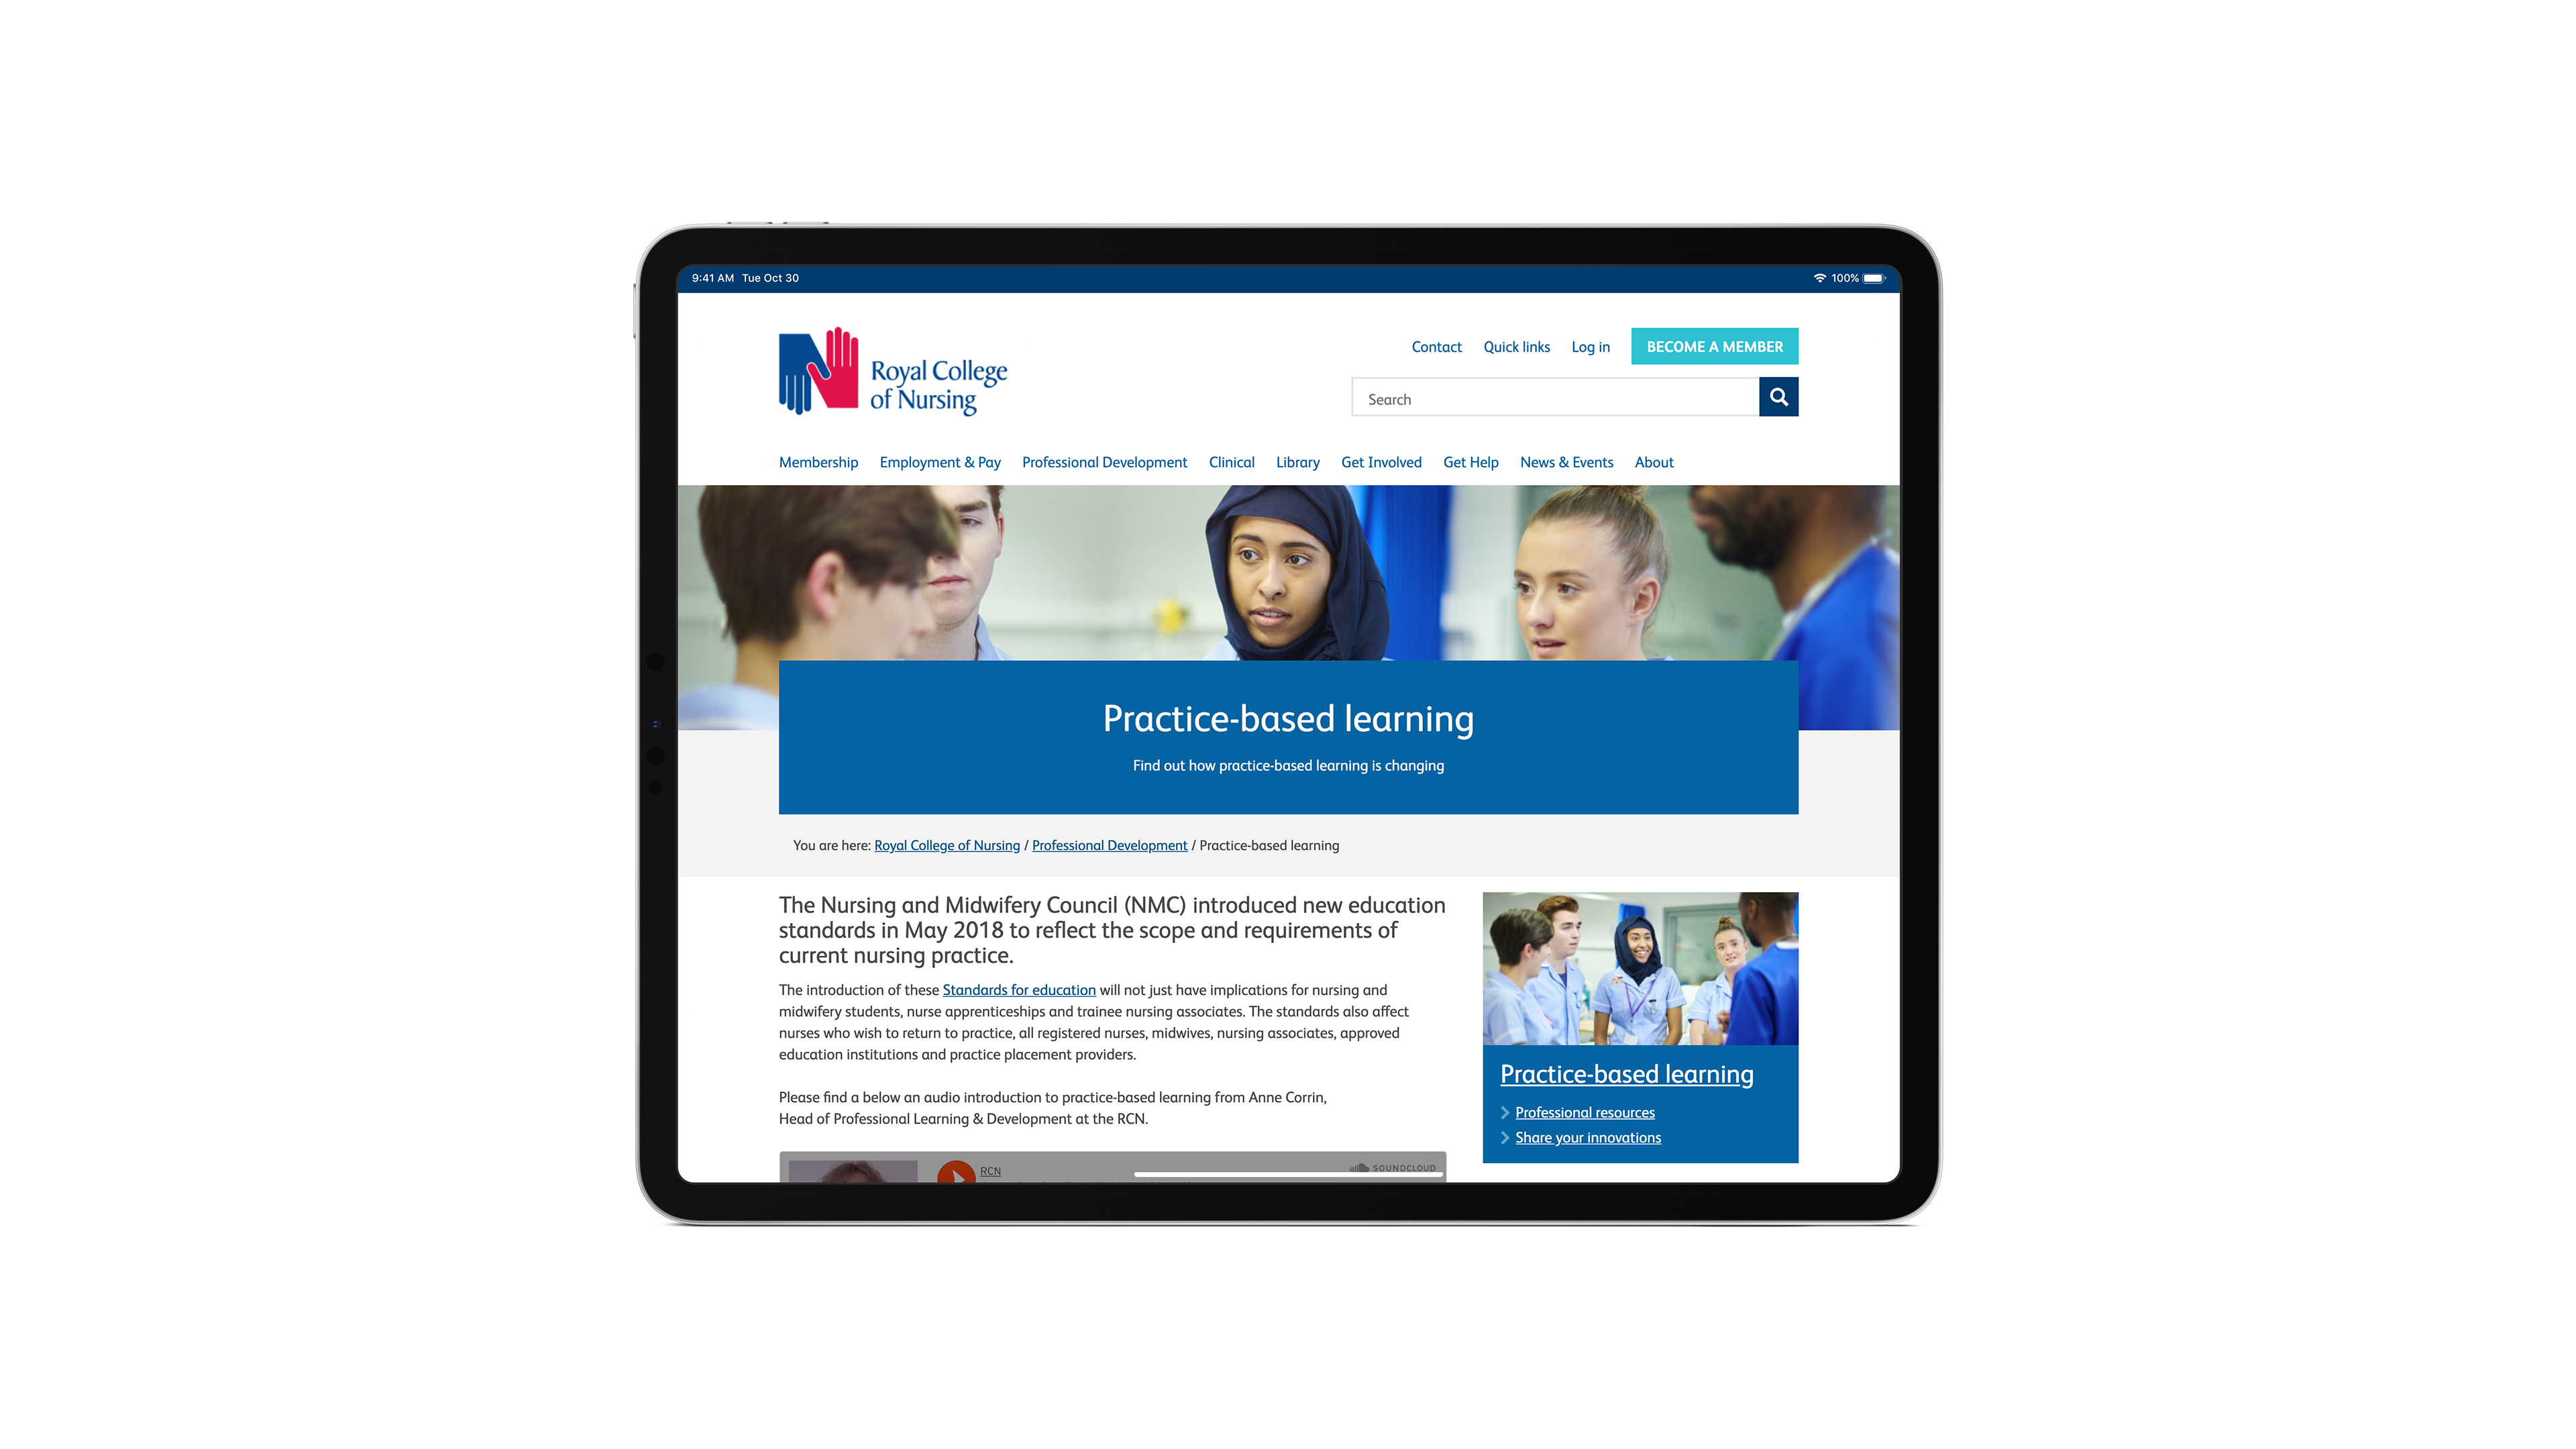 iPad screen view for Royal College of Nursing